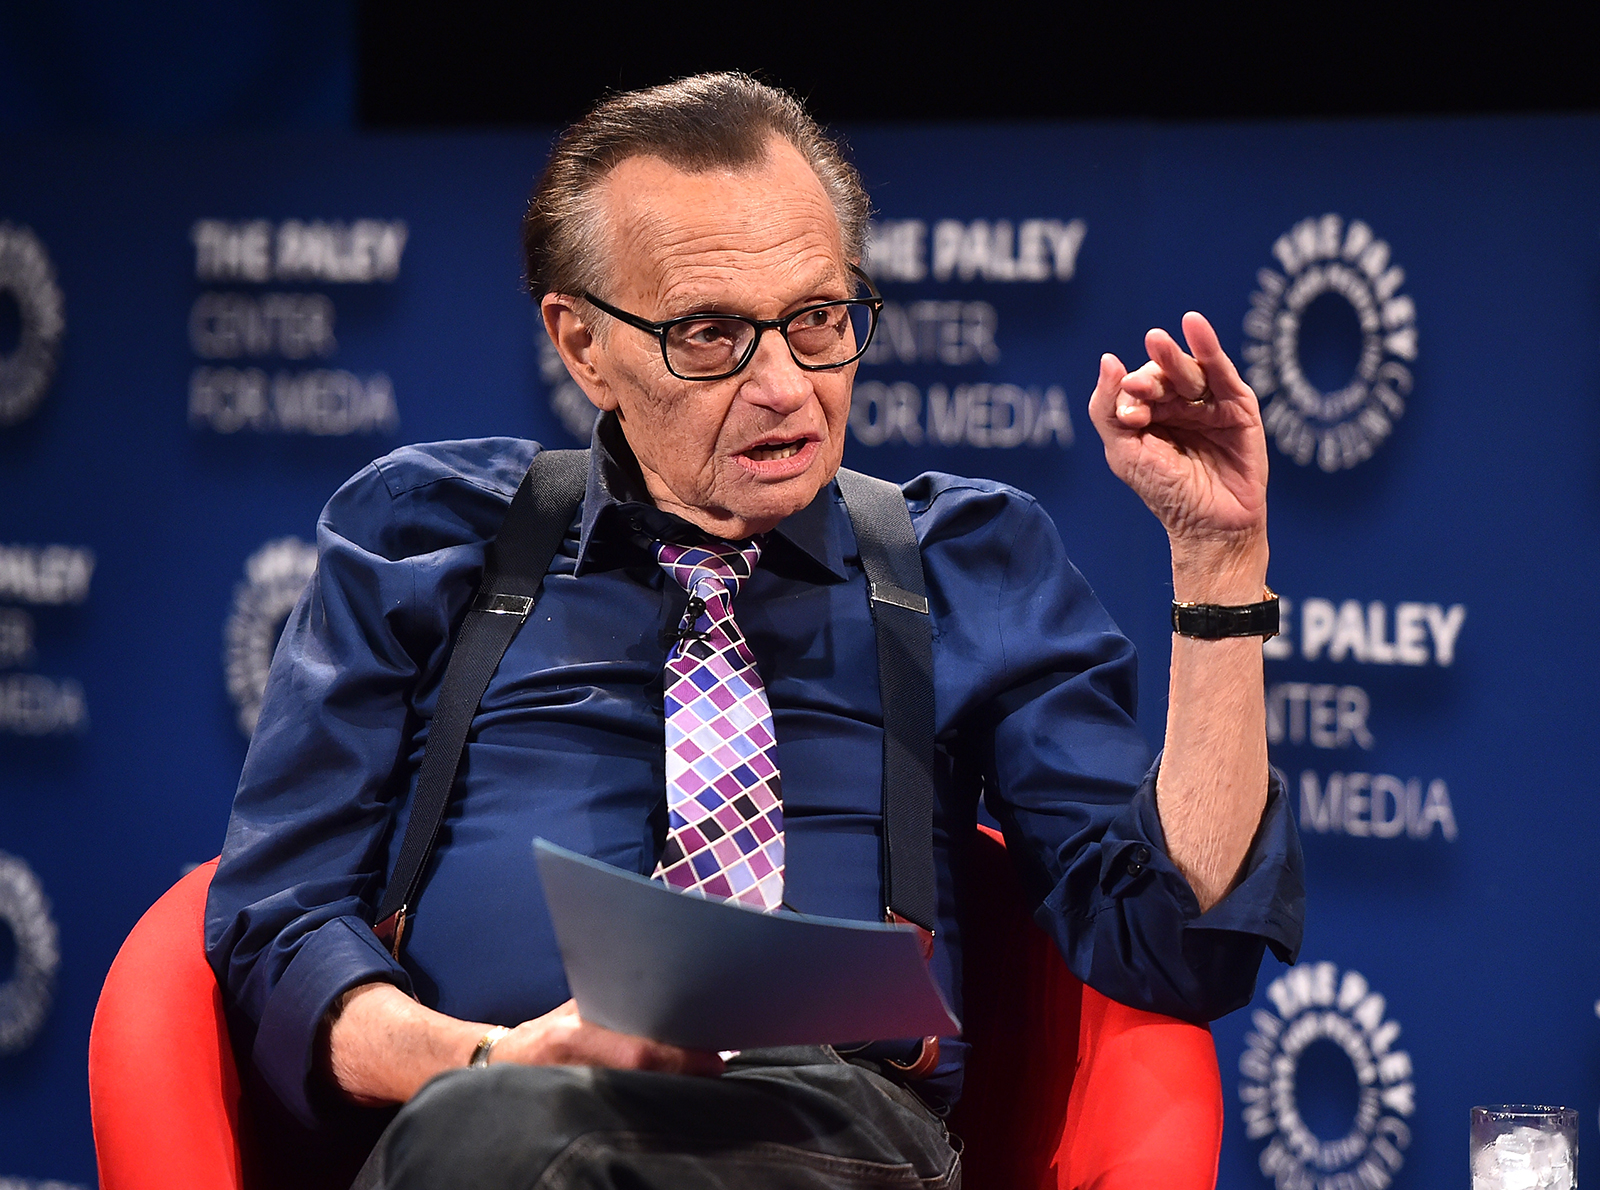 Celebrities and newsmakers are paying tribute to broadcasting legend Larry King